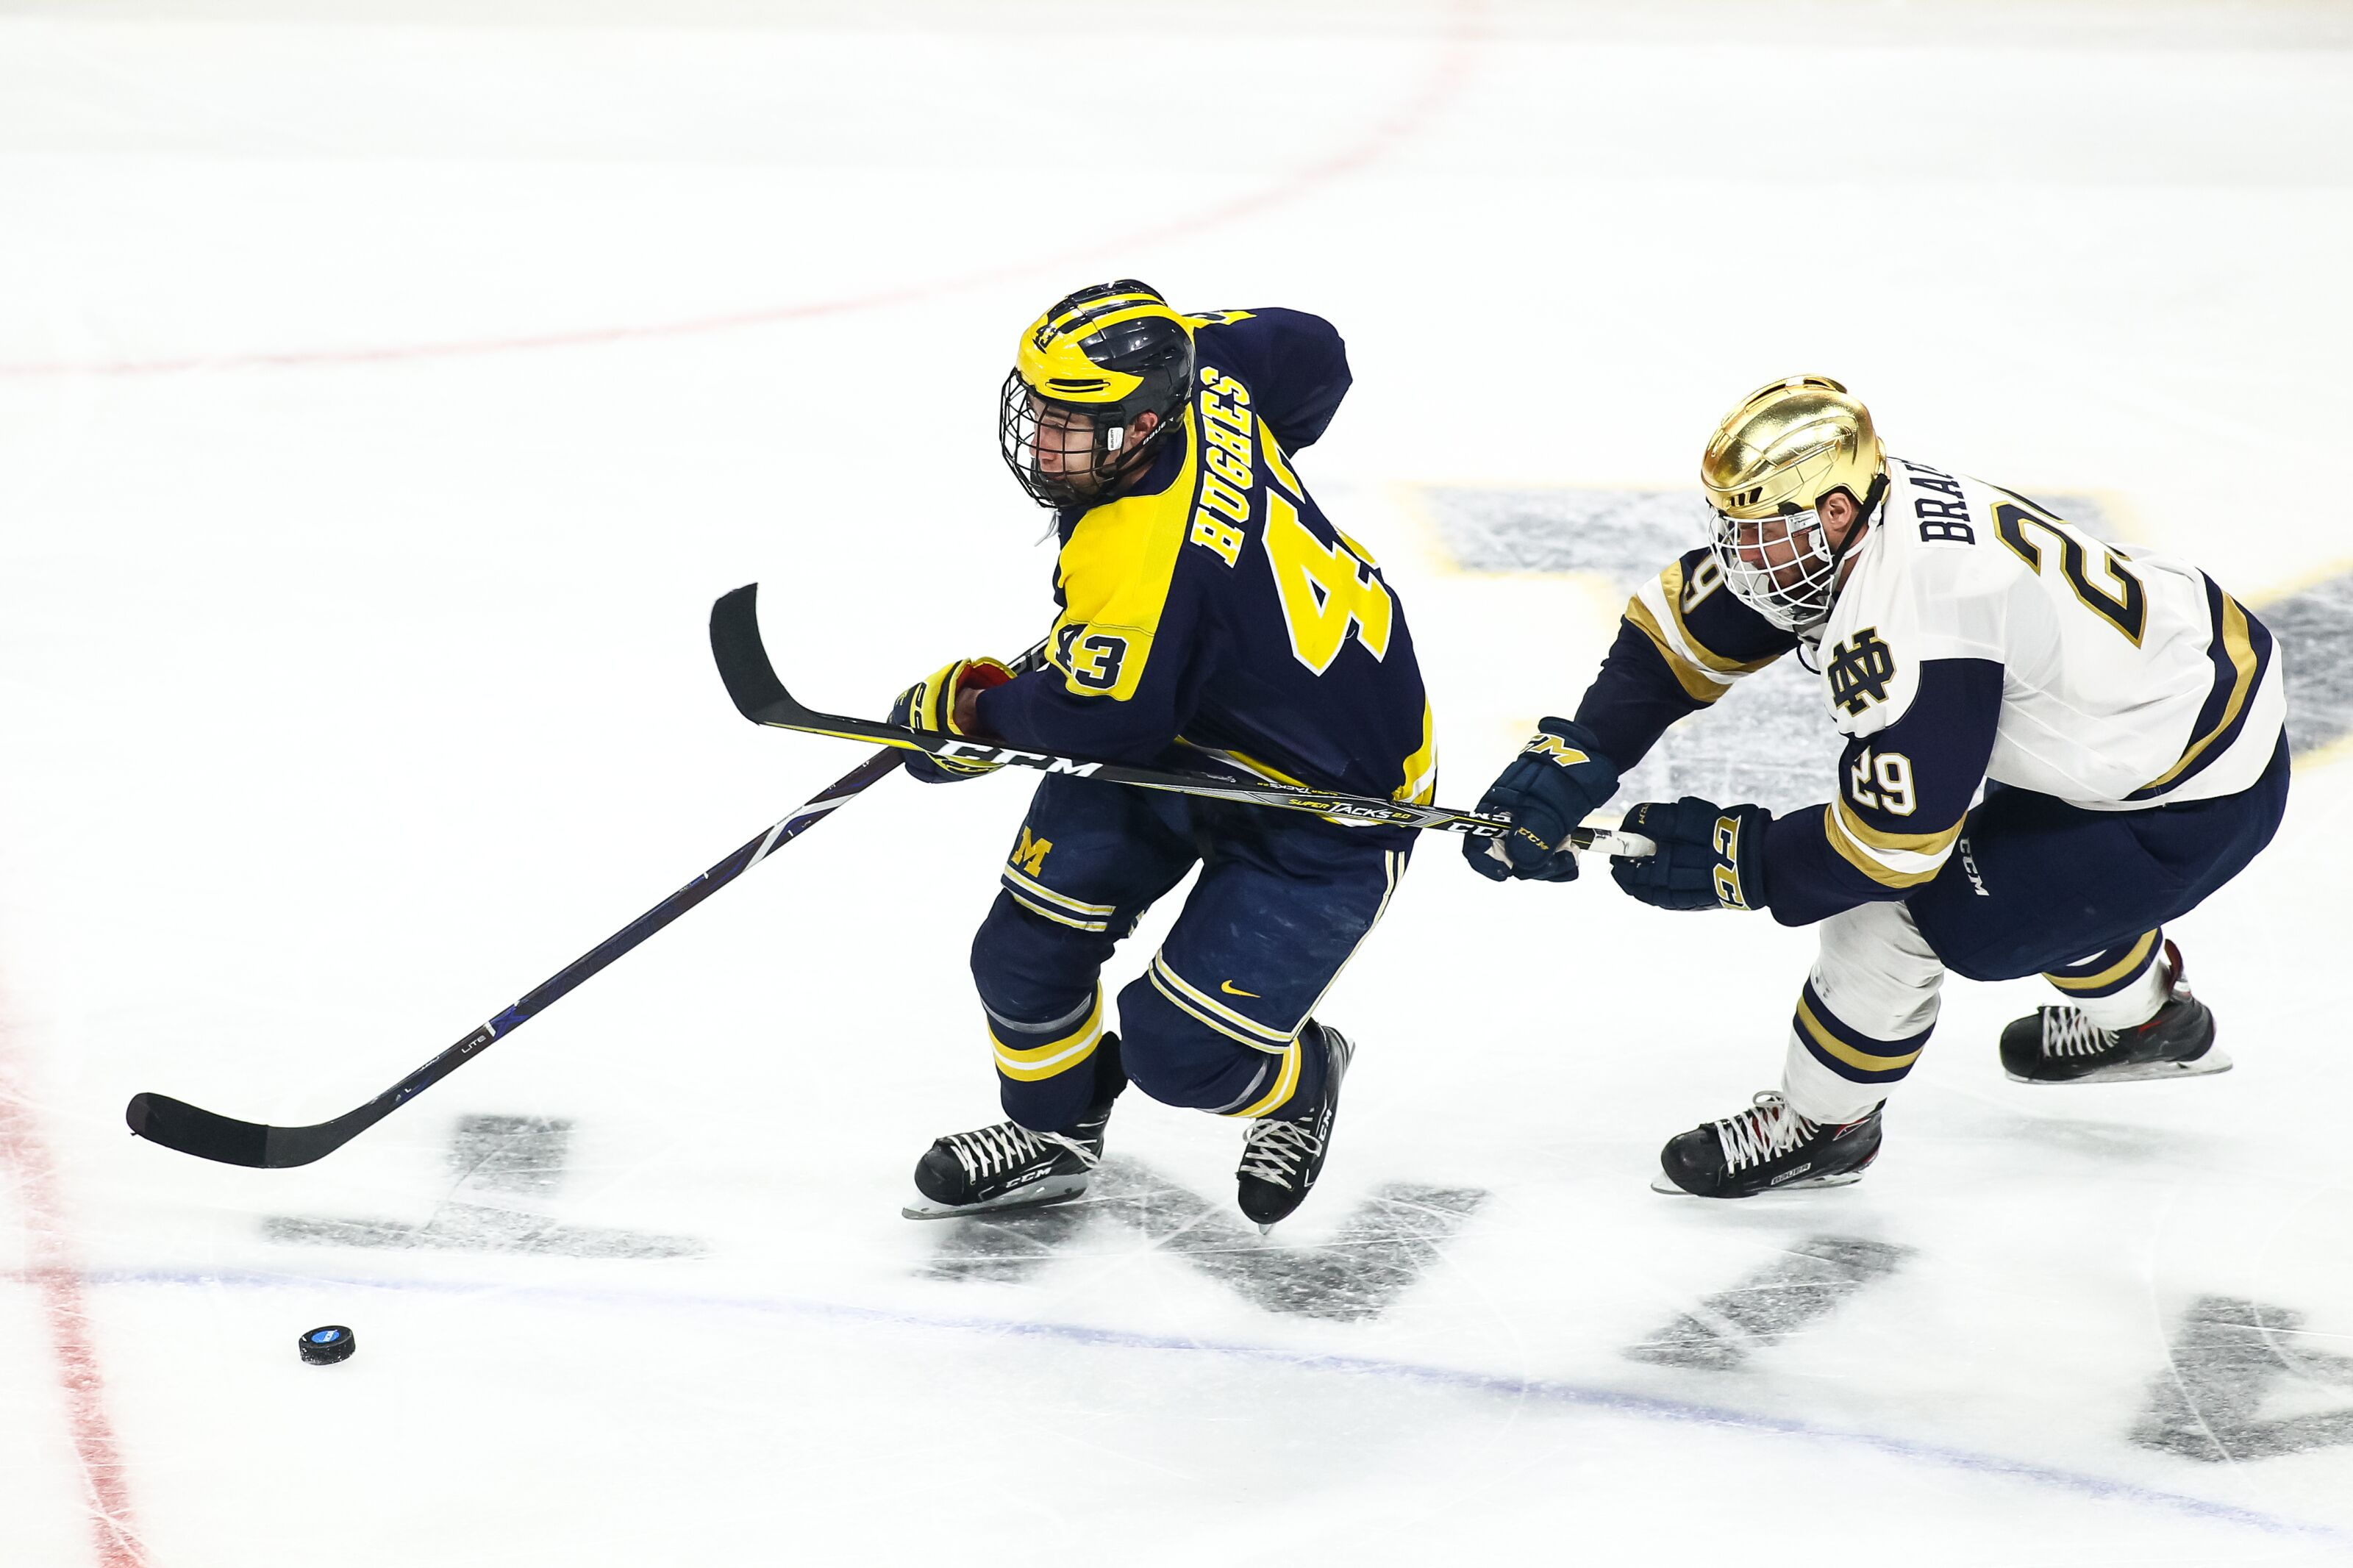 Vancouver Canucks: Developing Talent in NCAA Hockey